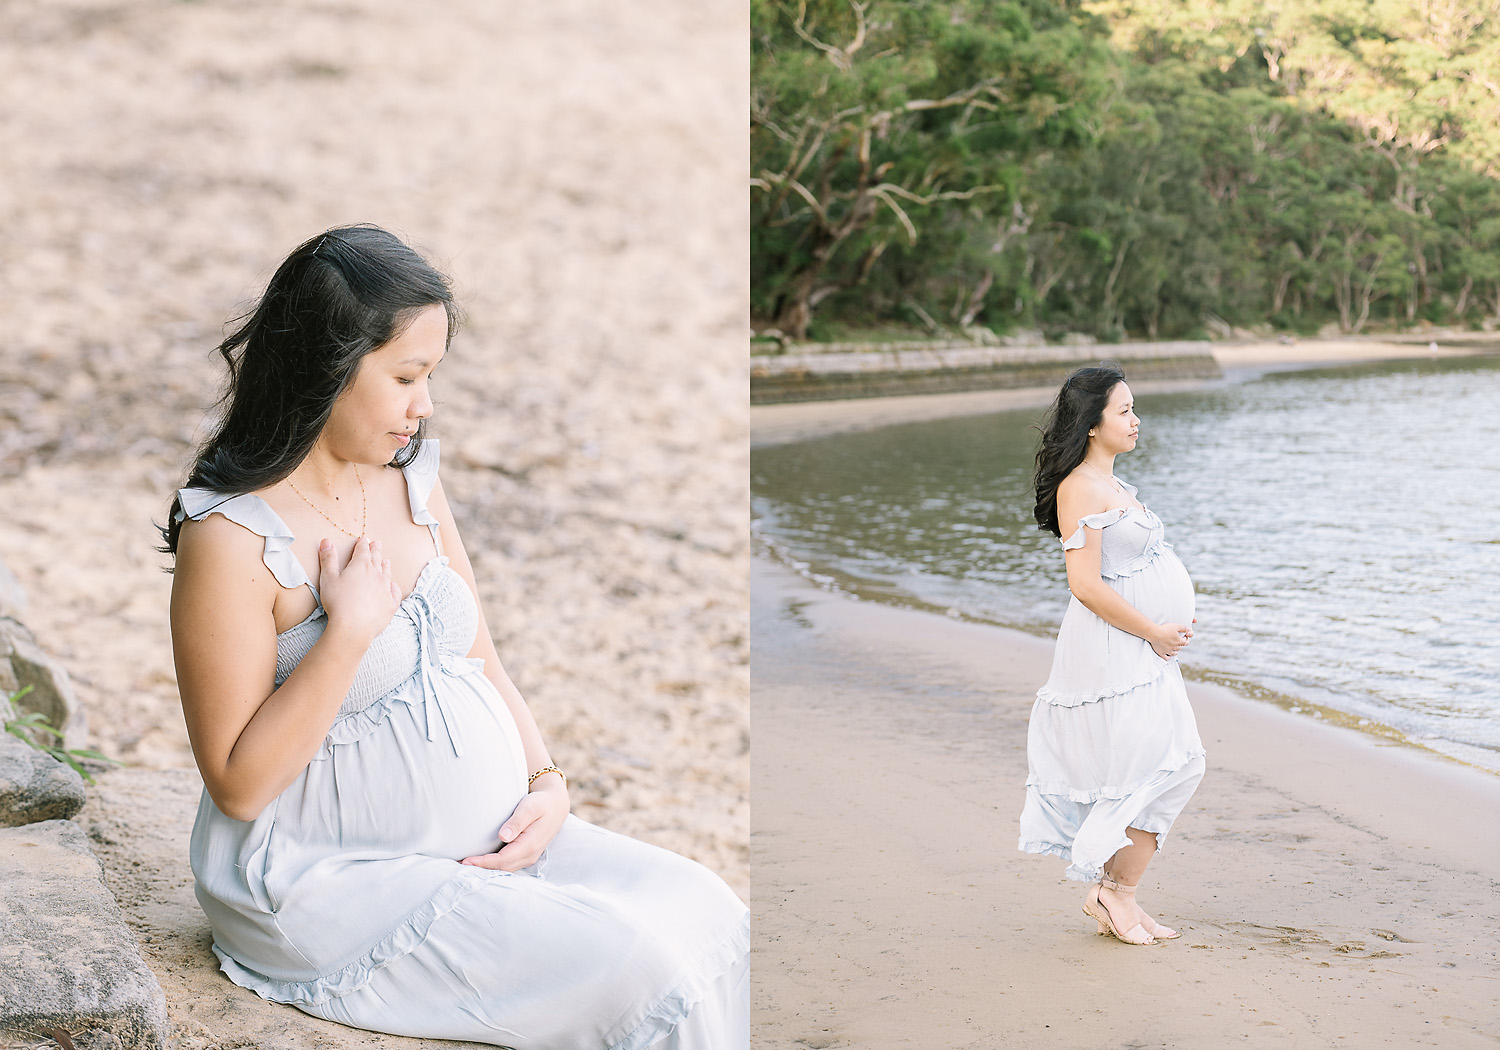 Two images side by side. First image of pregnant woman seated at beach looking down at belly, second image of pregnant woman standing at riverside looking out to the water as photographed by Sutherland Shire Maternity Photographer Sevenish Photography